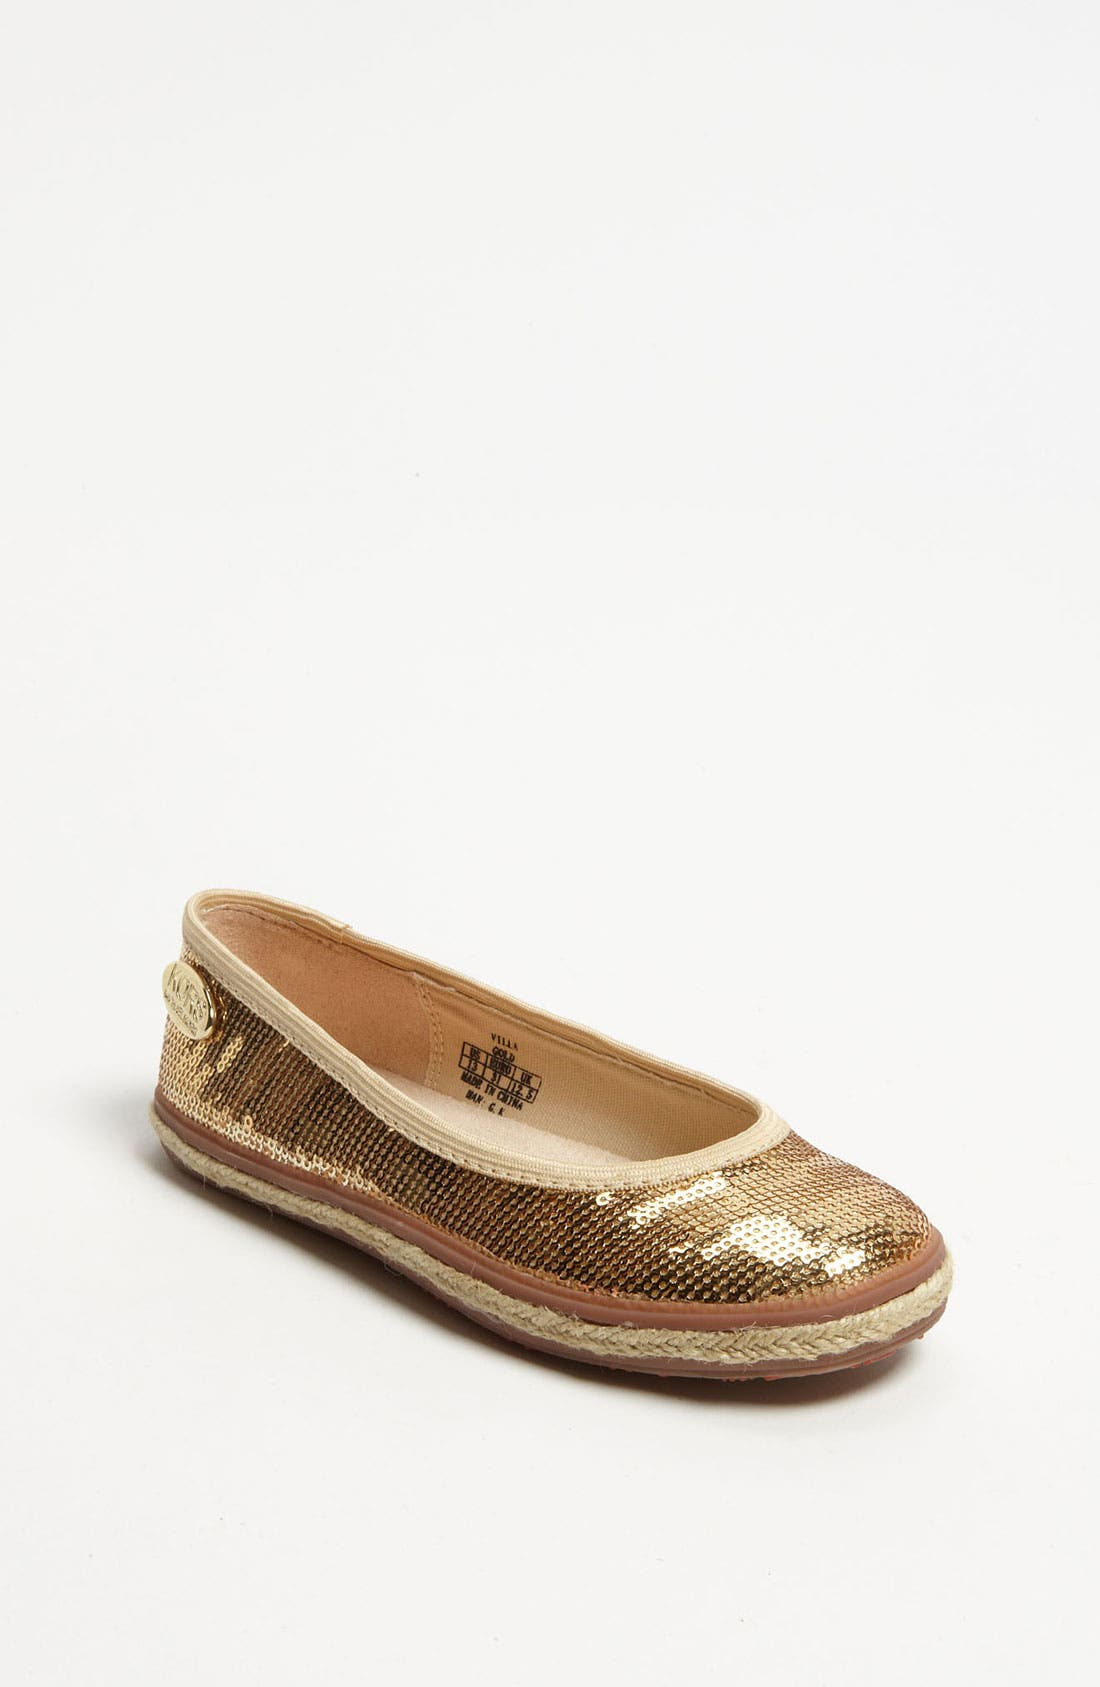 Alternate Image 1 Selected - KORS Michael Kors 'Villa' Flat (Toddler, Little Kid & Big Kid)